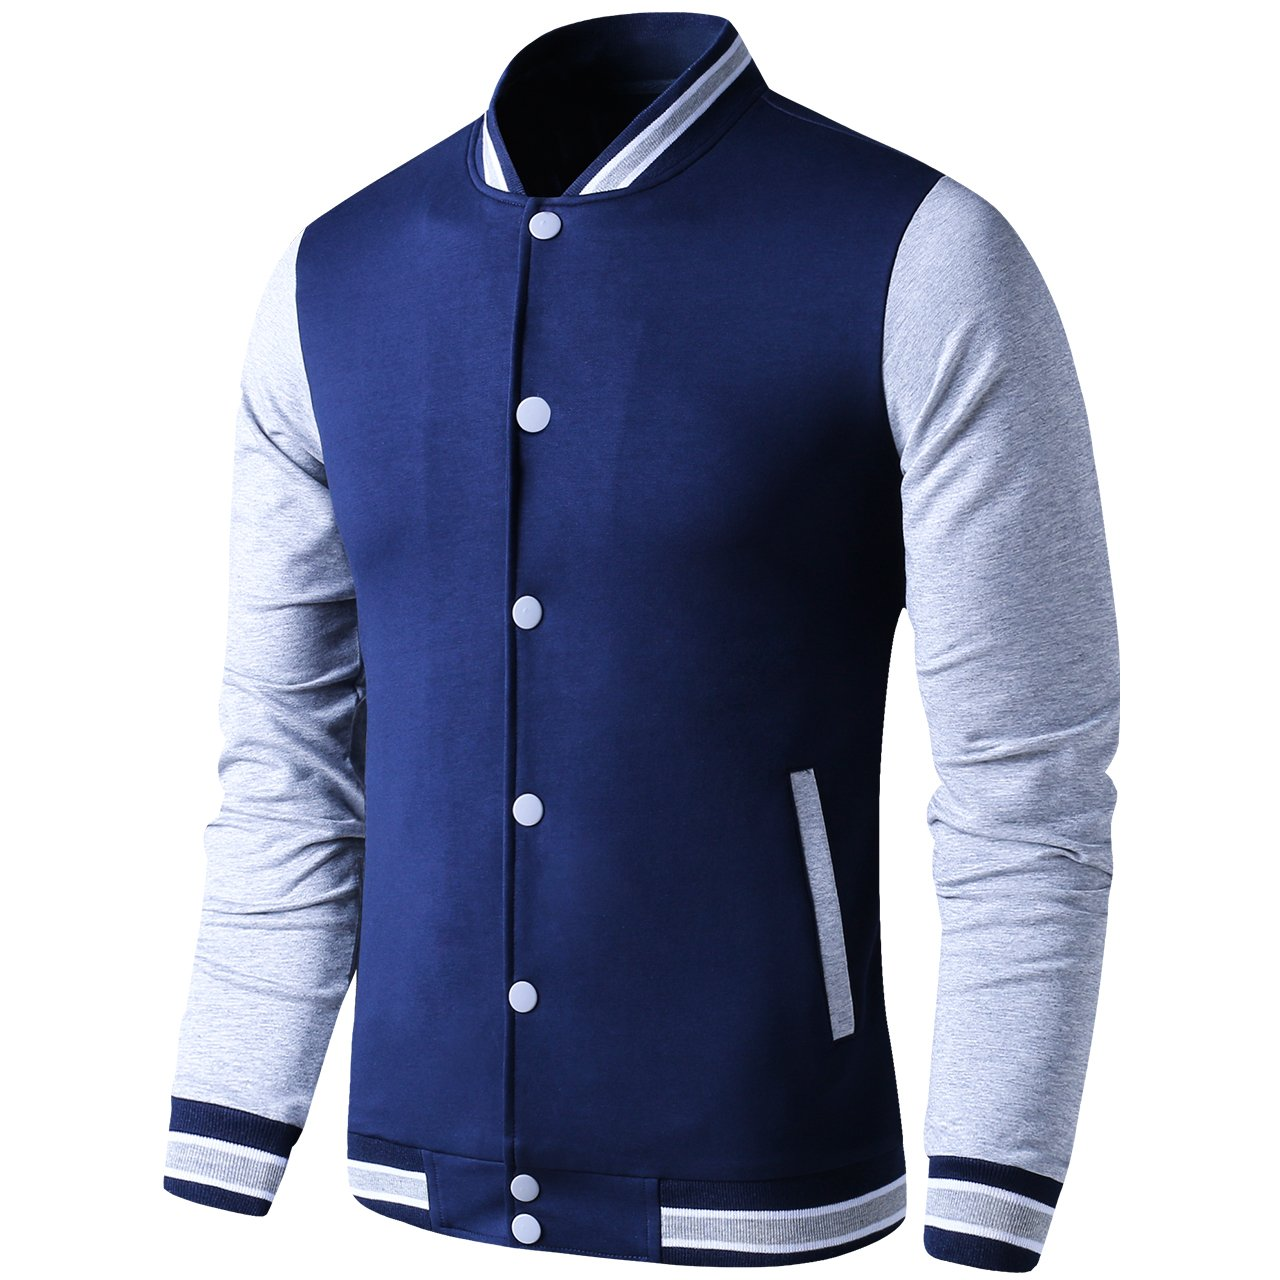 a322351389 LTIFONE Mens Lightweight Varsity Jacket Button Down Baseball College  Letterman Jacket(Blue,L)